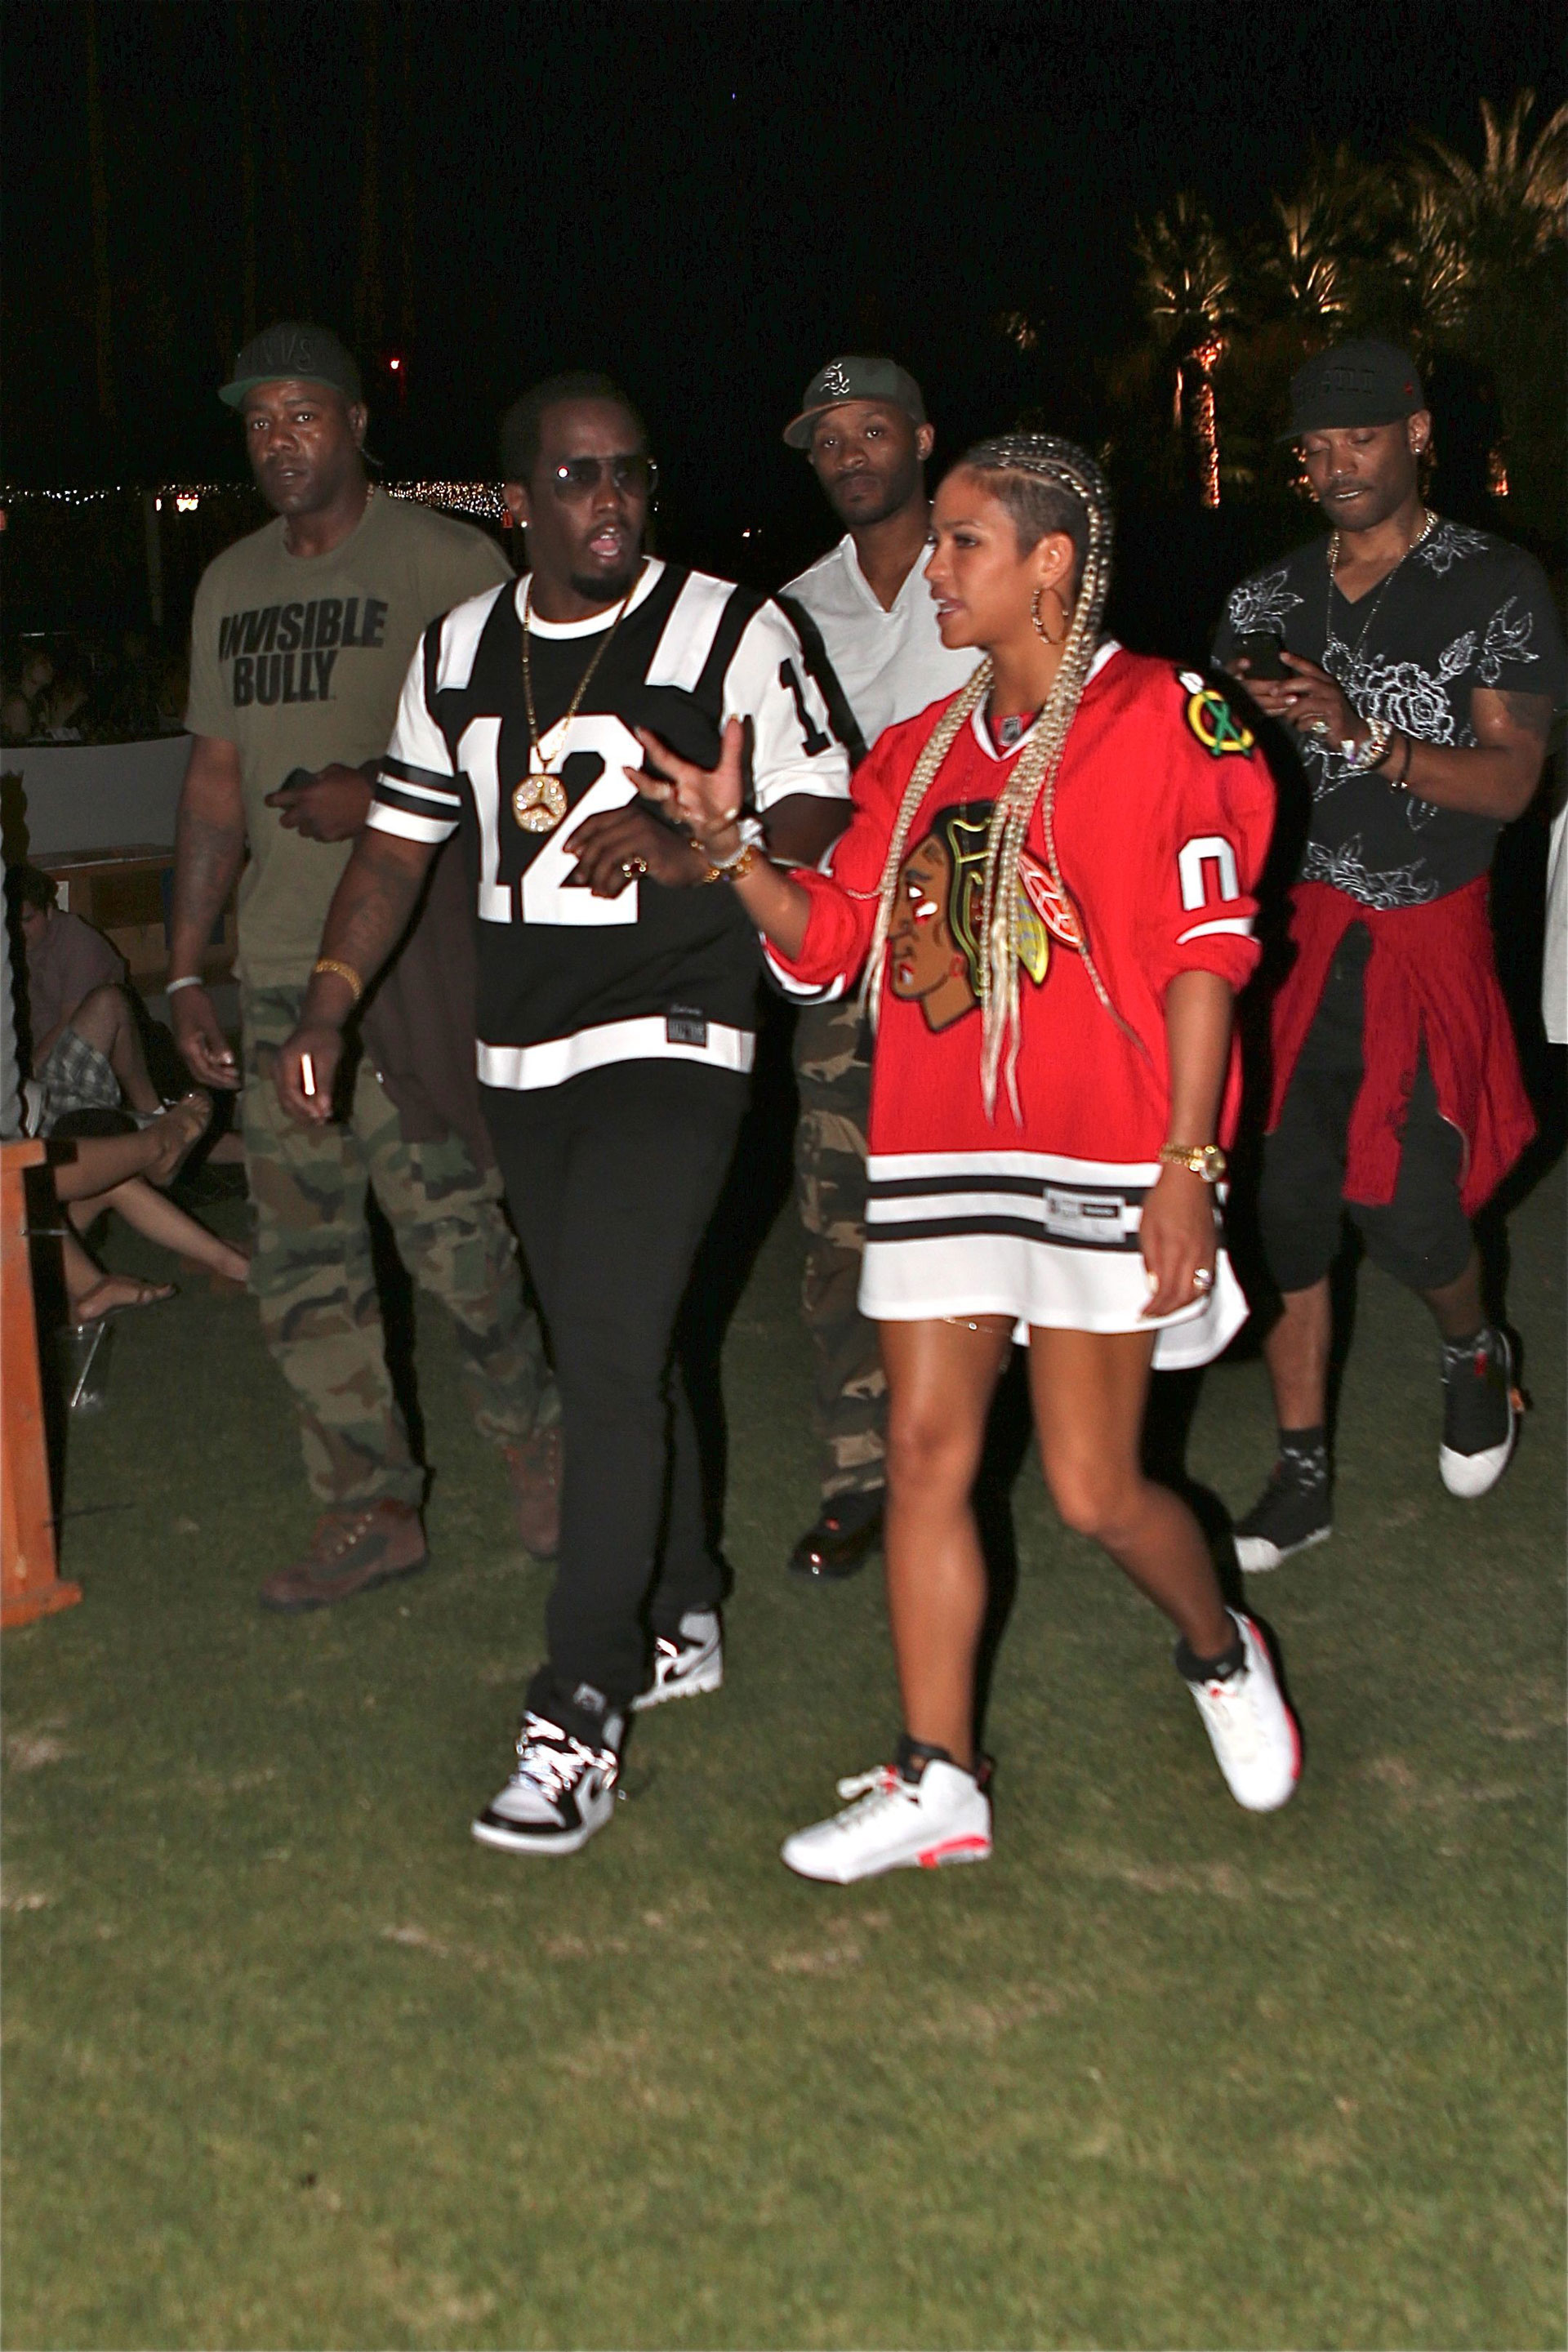 P. Diddy & Cassie's Sports Jerseys at Coachella